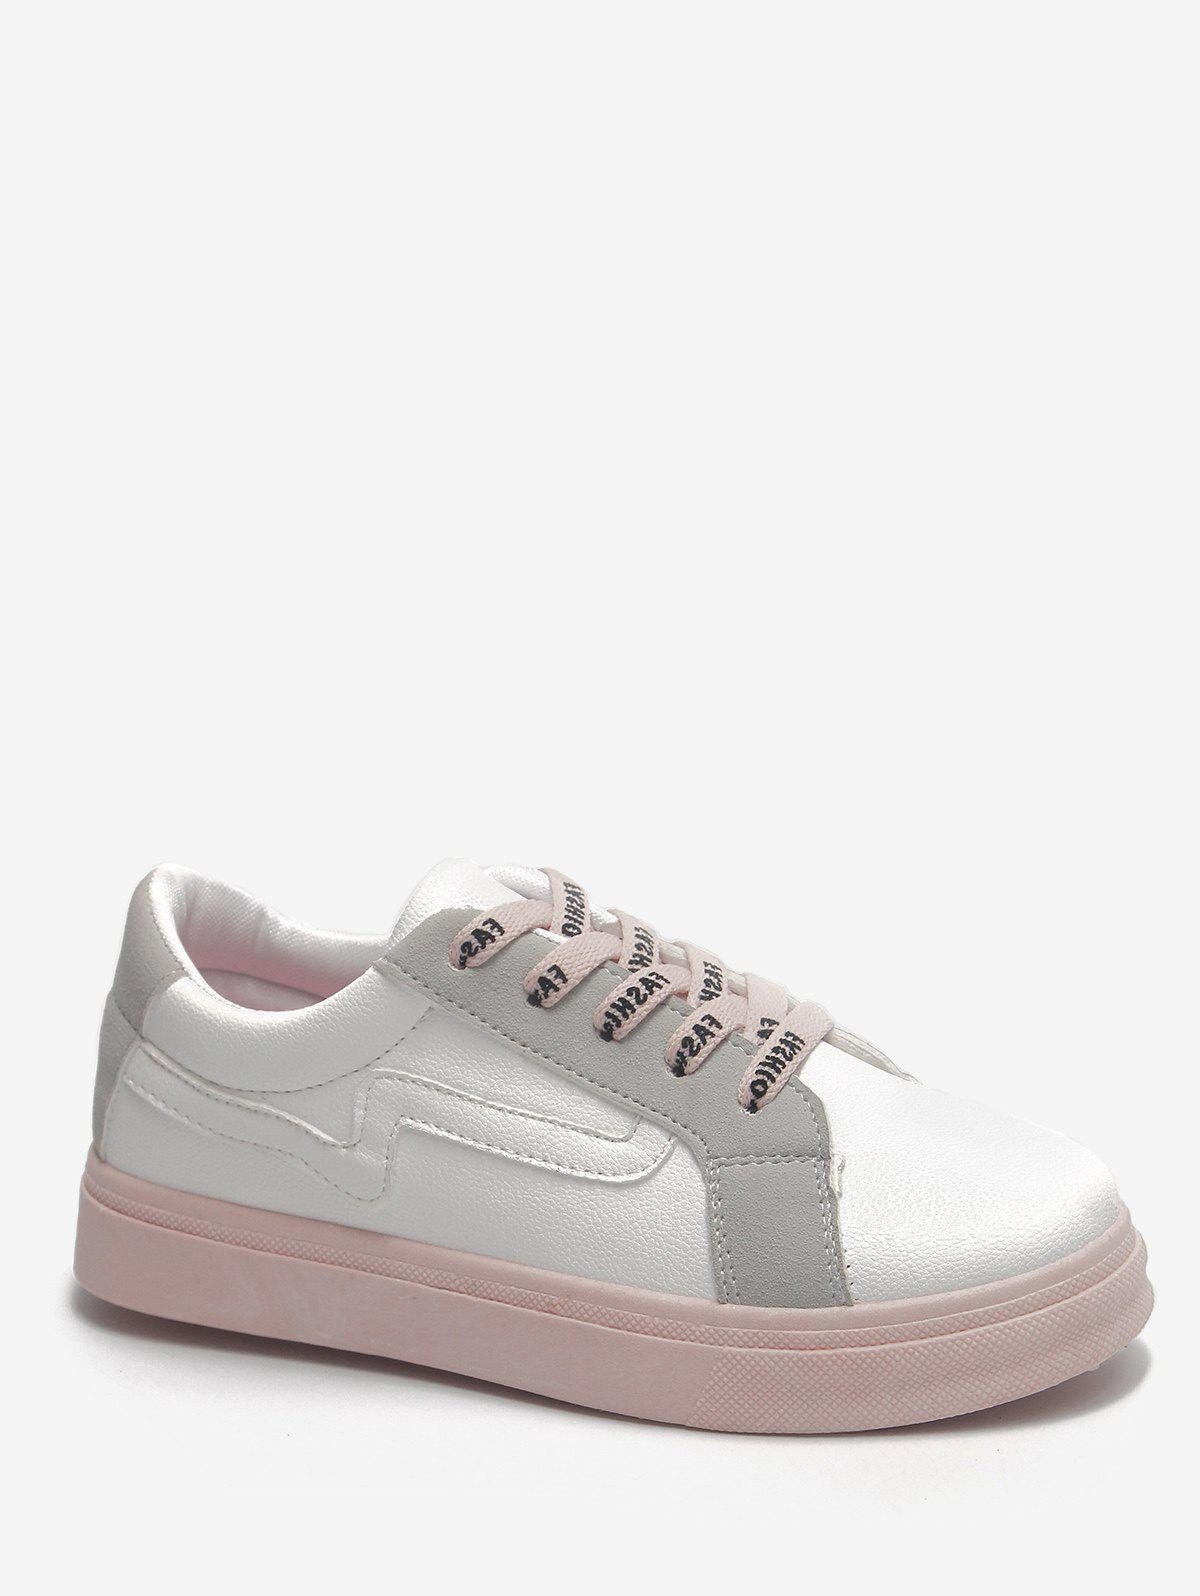 explore cheap online free shipping shop offer Color Block Stitching Sneakers - White 37 fashion Style for sale DUiAF